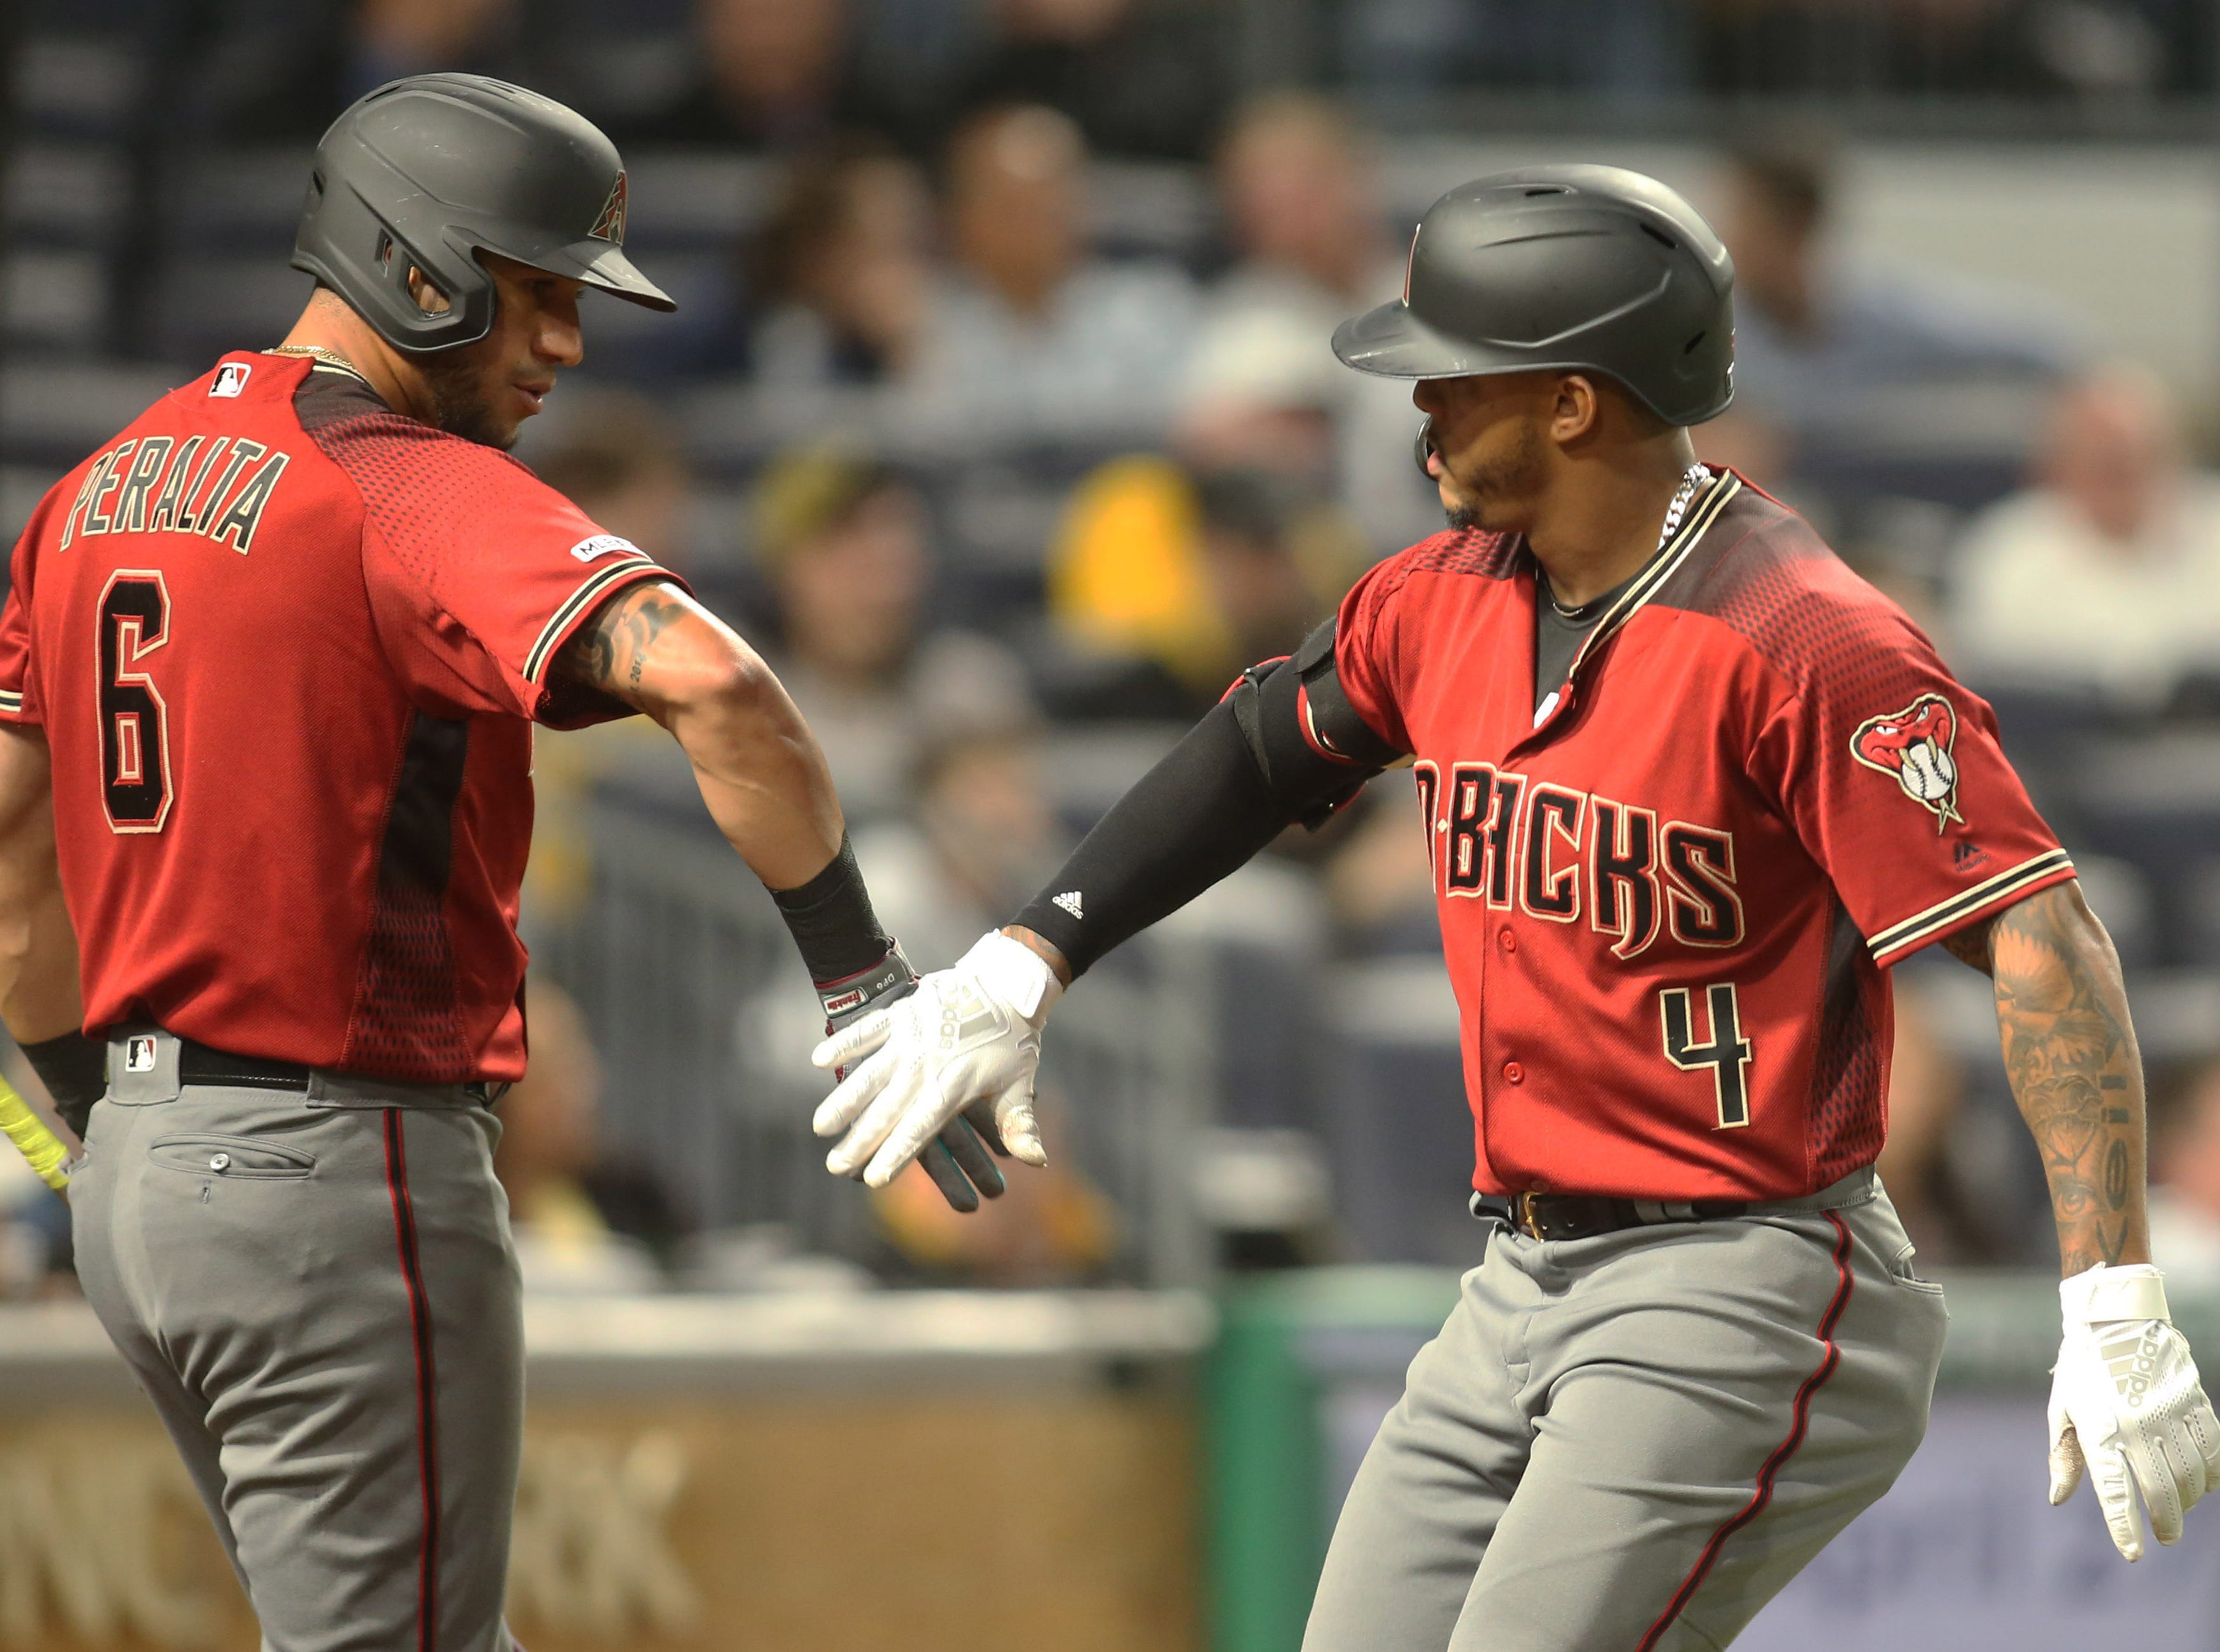 Apr 24, 2019; Pittsburgh, PA, USA;  Arizona Diamondbacks  center fielder Ketel Marte (4) celebrates with left fielder David Peralta (6) after hitting a solo home run against the Pittsburgh Pirates during the fifth inning at PNC Park. Mandatory Credit: Charles LeClaire-USA TODAY Sports